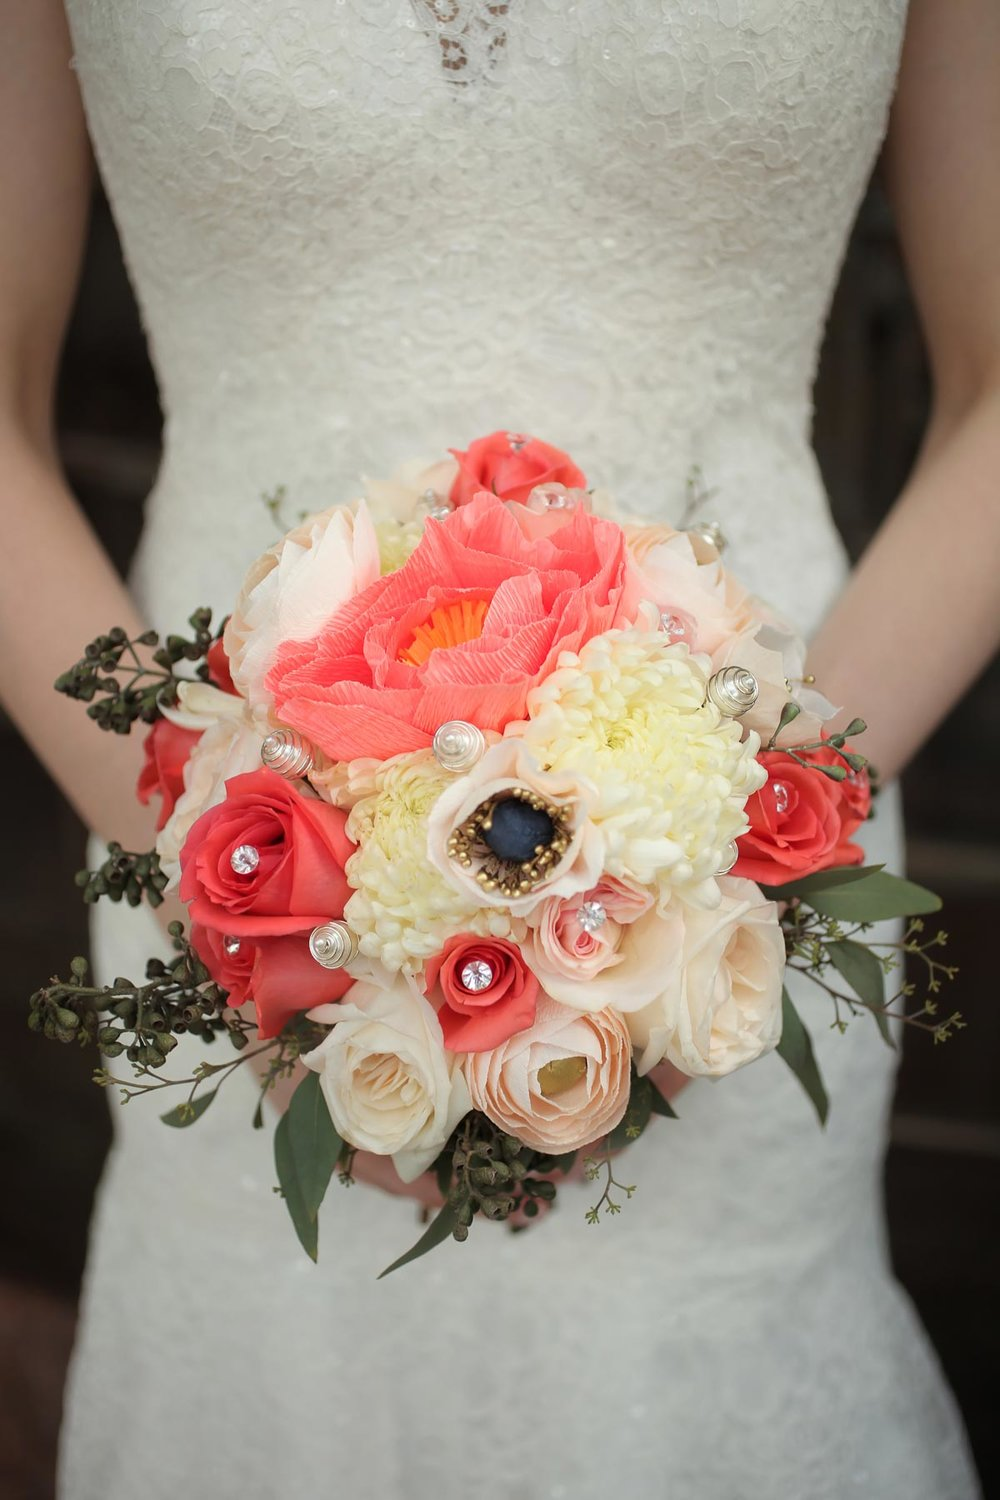 colorful-bridal-bouquet-ideas-real-wedding-lace-dress-angela-howard.jpg